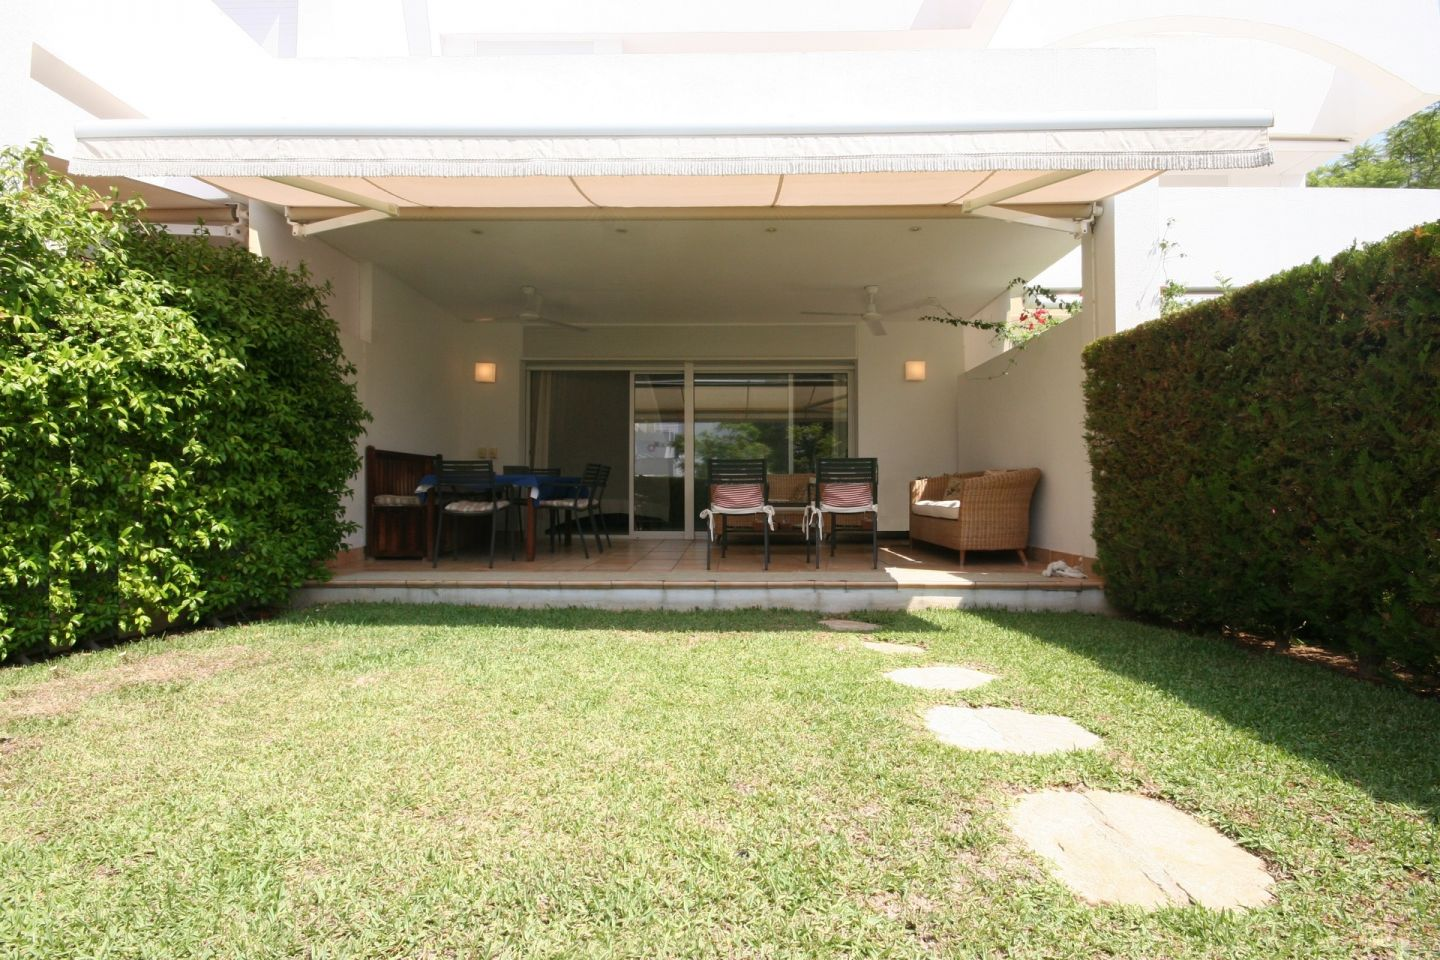 4 Bed Semidetached House for sale in PUERTO POLLENSA 7